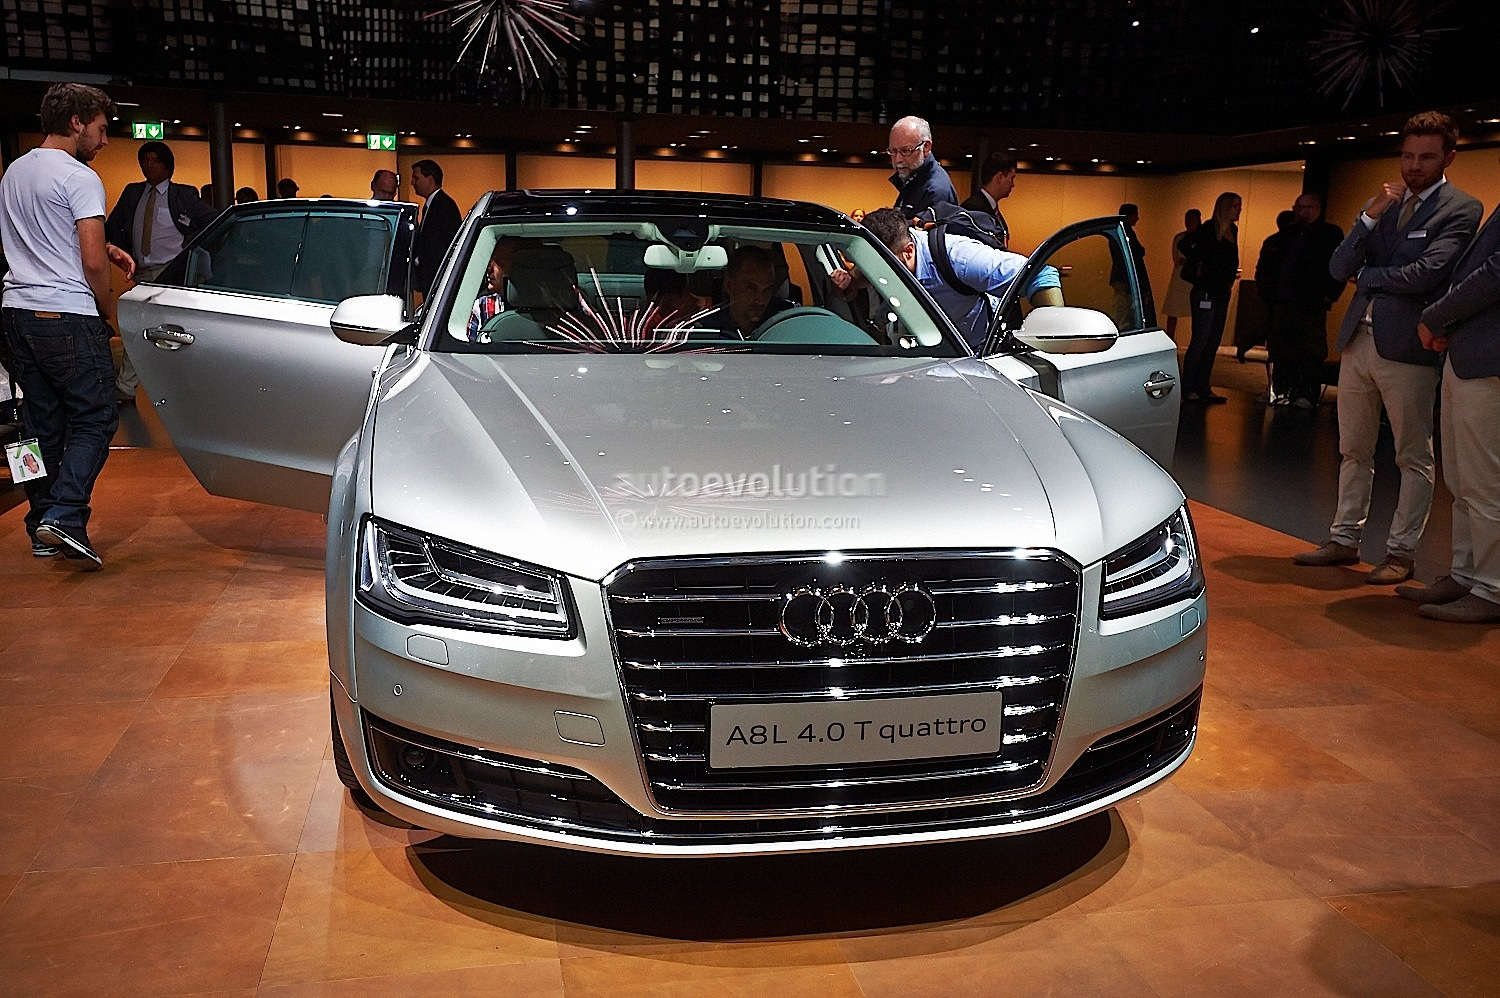 2015 audi a8 pricing and details announced - autoevolution